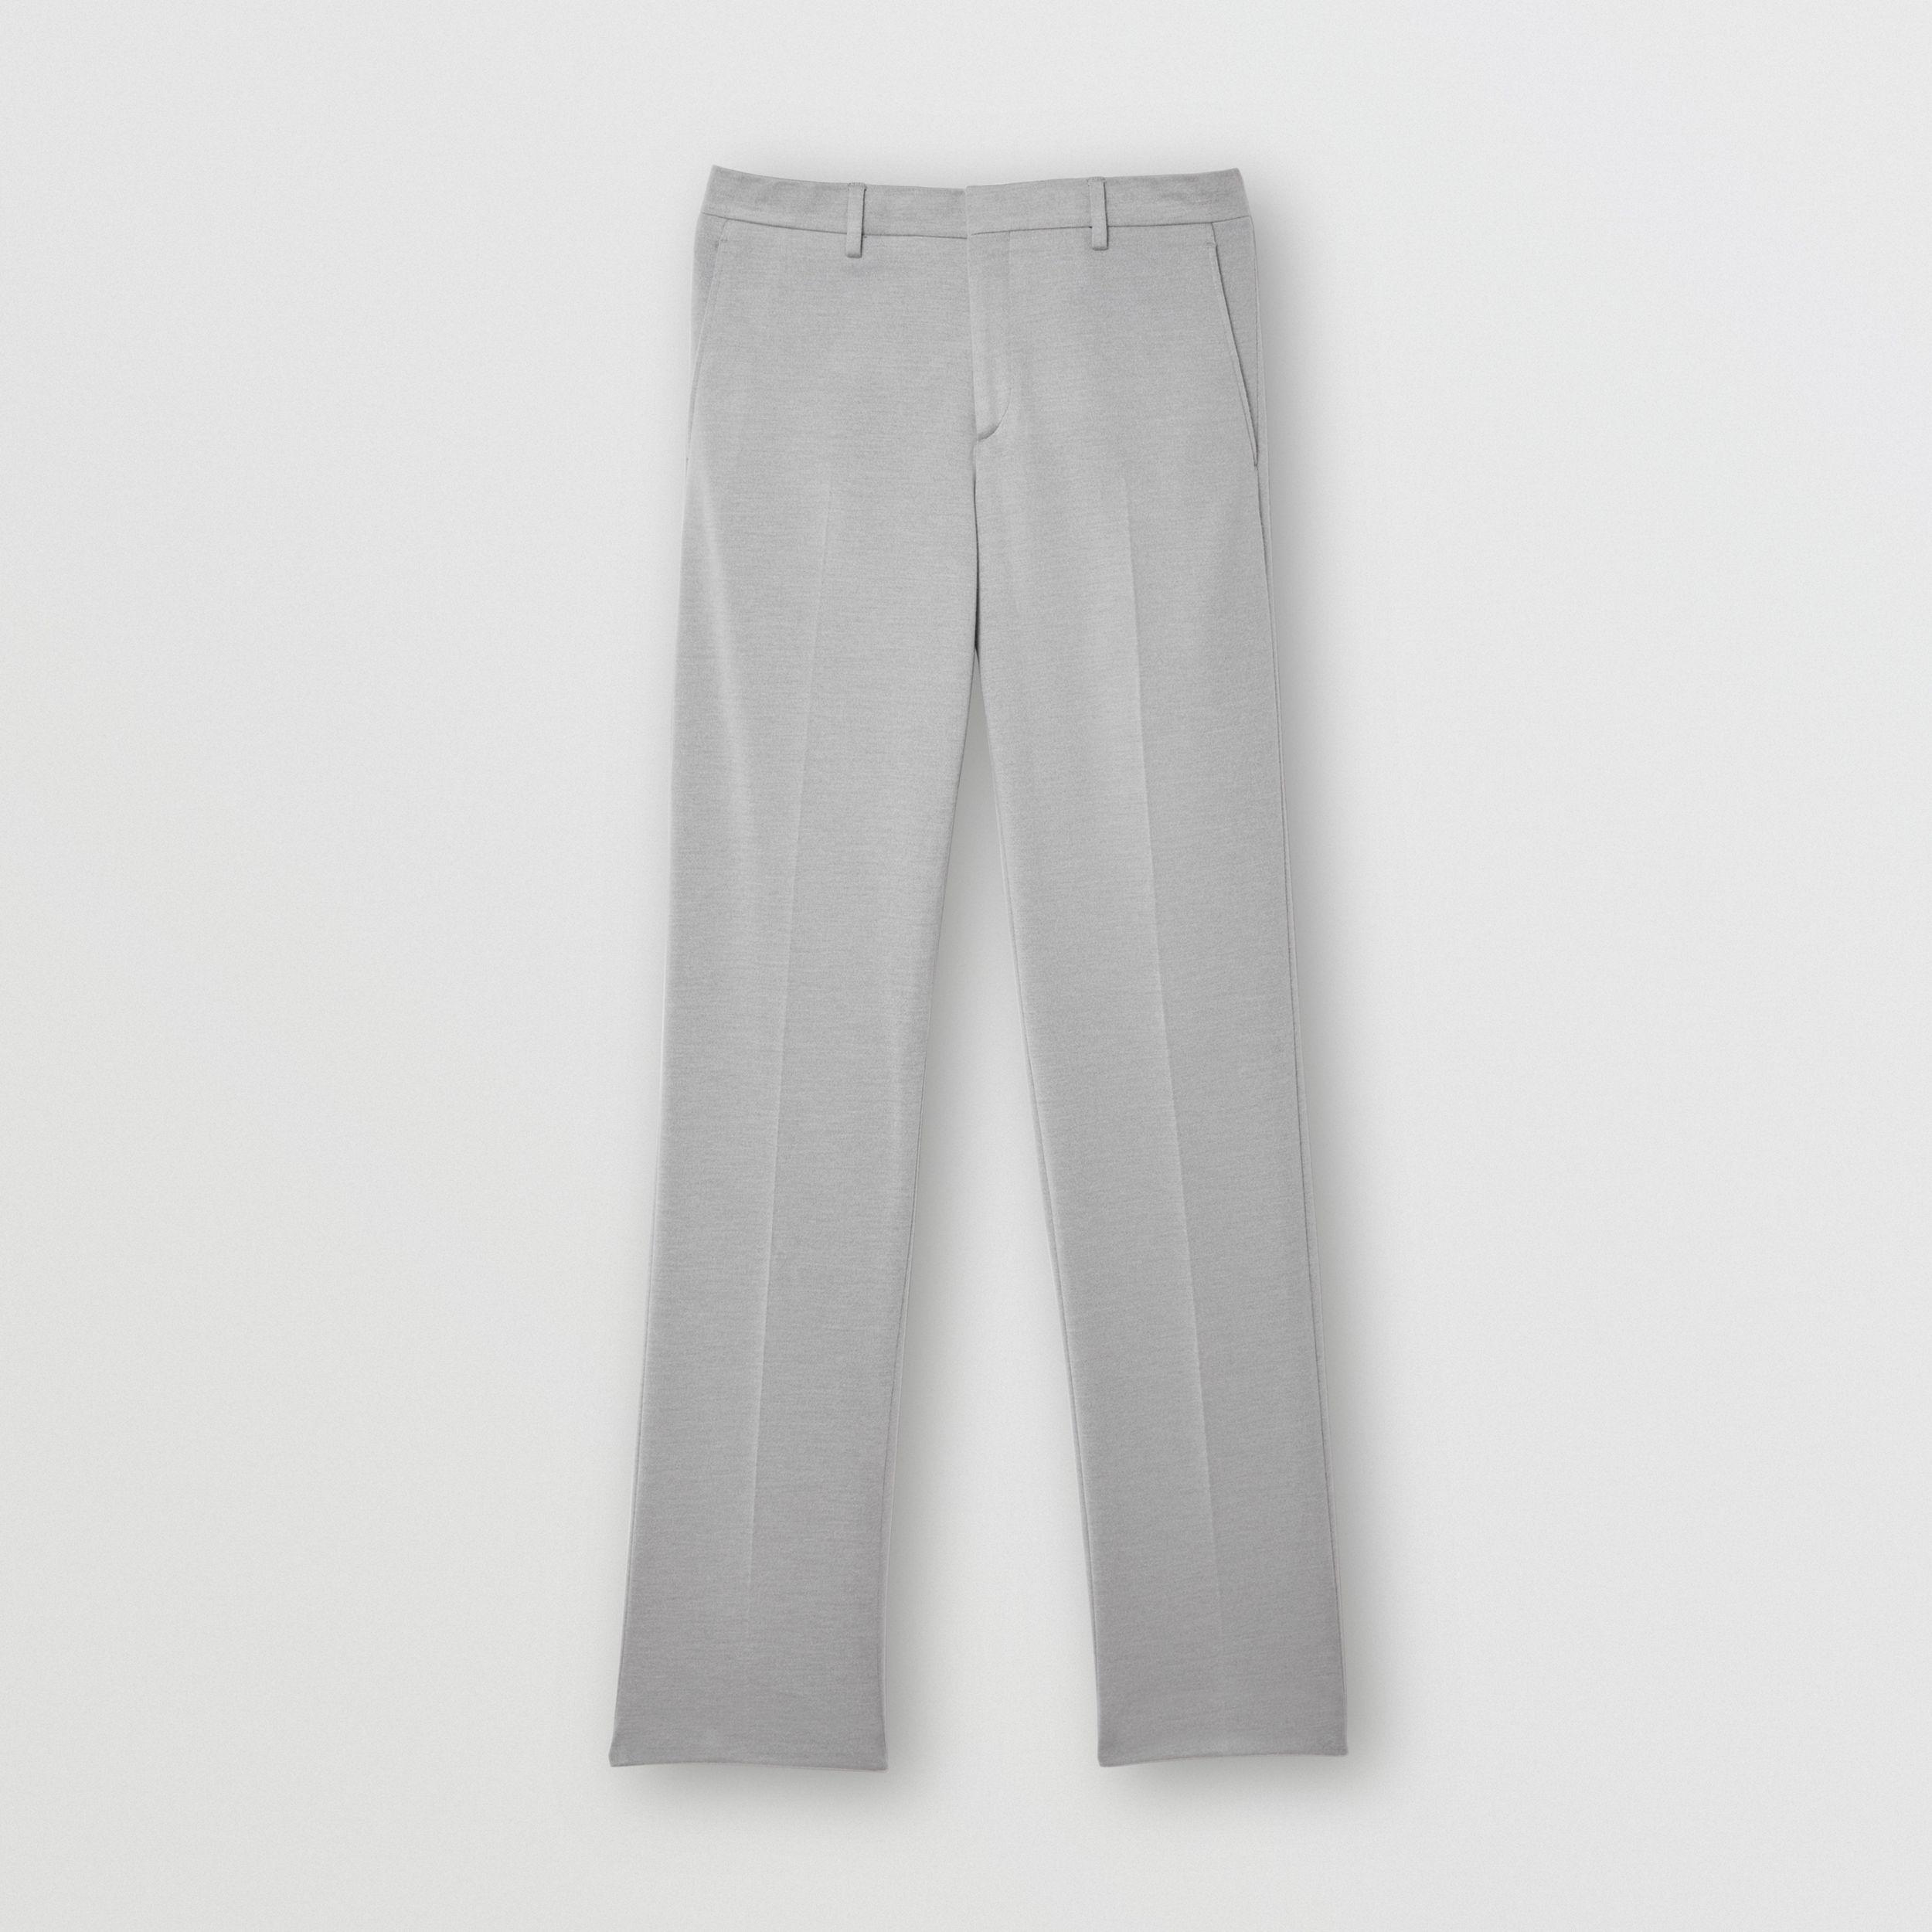 English Fit Cashmere Silk Jersey Tailored Trousers in Light Pebble Grey | Burberry - 4